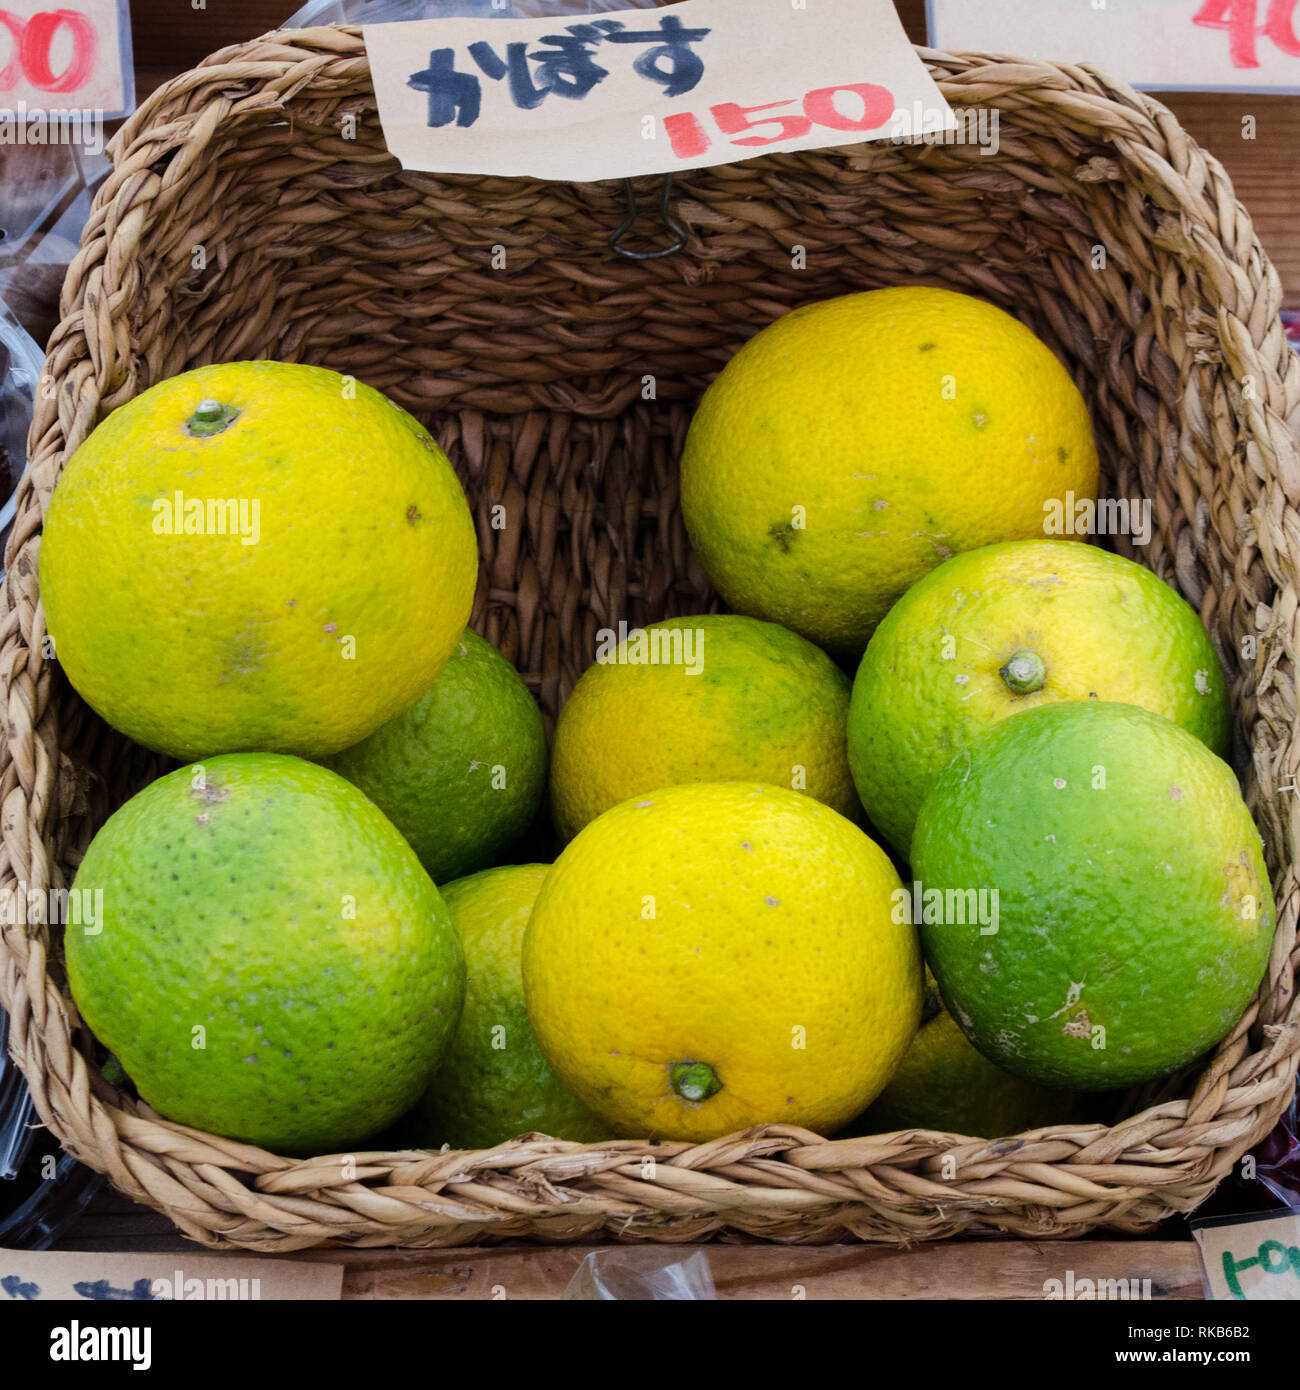 Kabosu - a sour citrus variety native to Japan and used in traditional Japanese cuisine.  The yellow fruits are ripening. - Stock Image